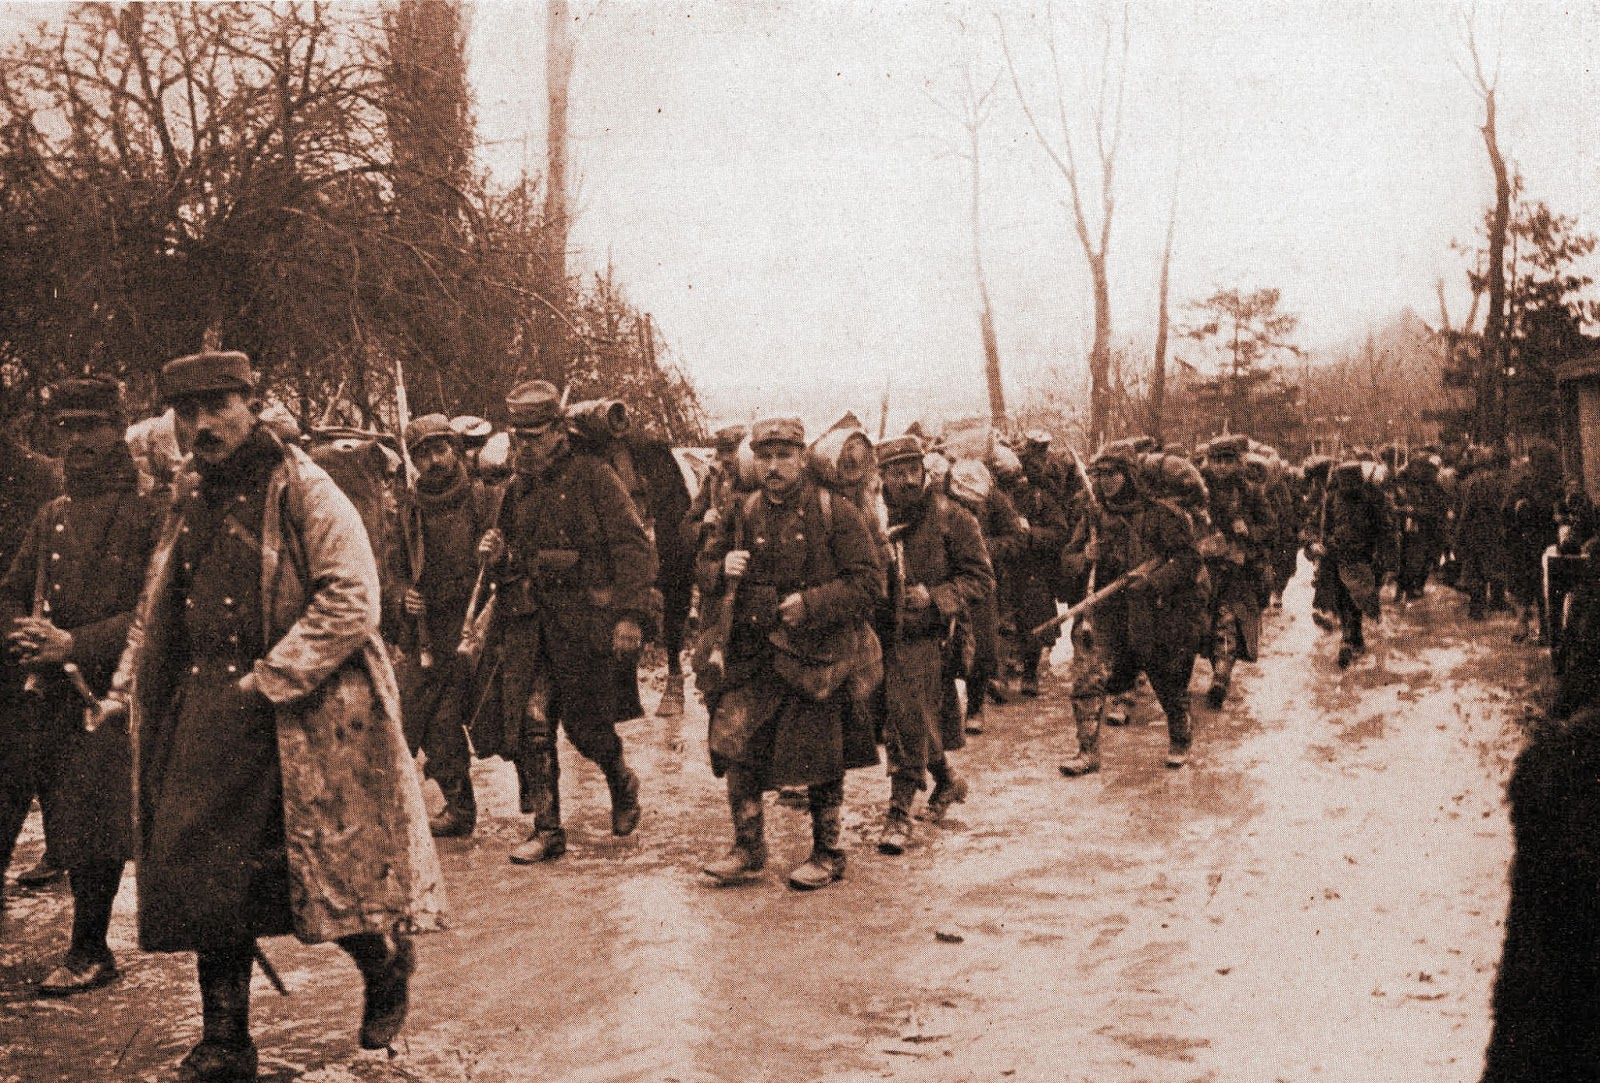 French troops marching in Champagne